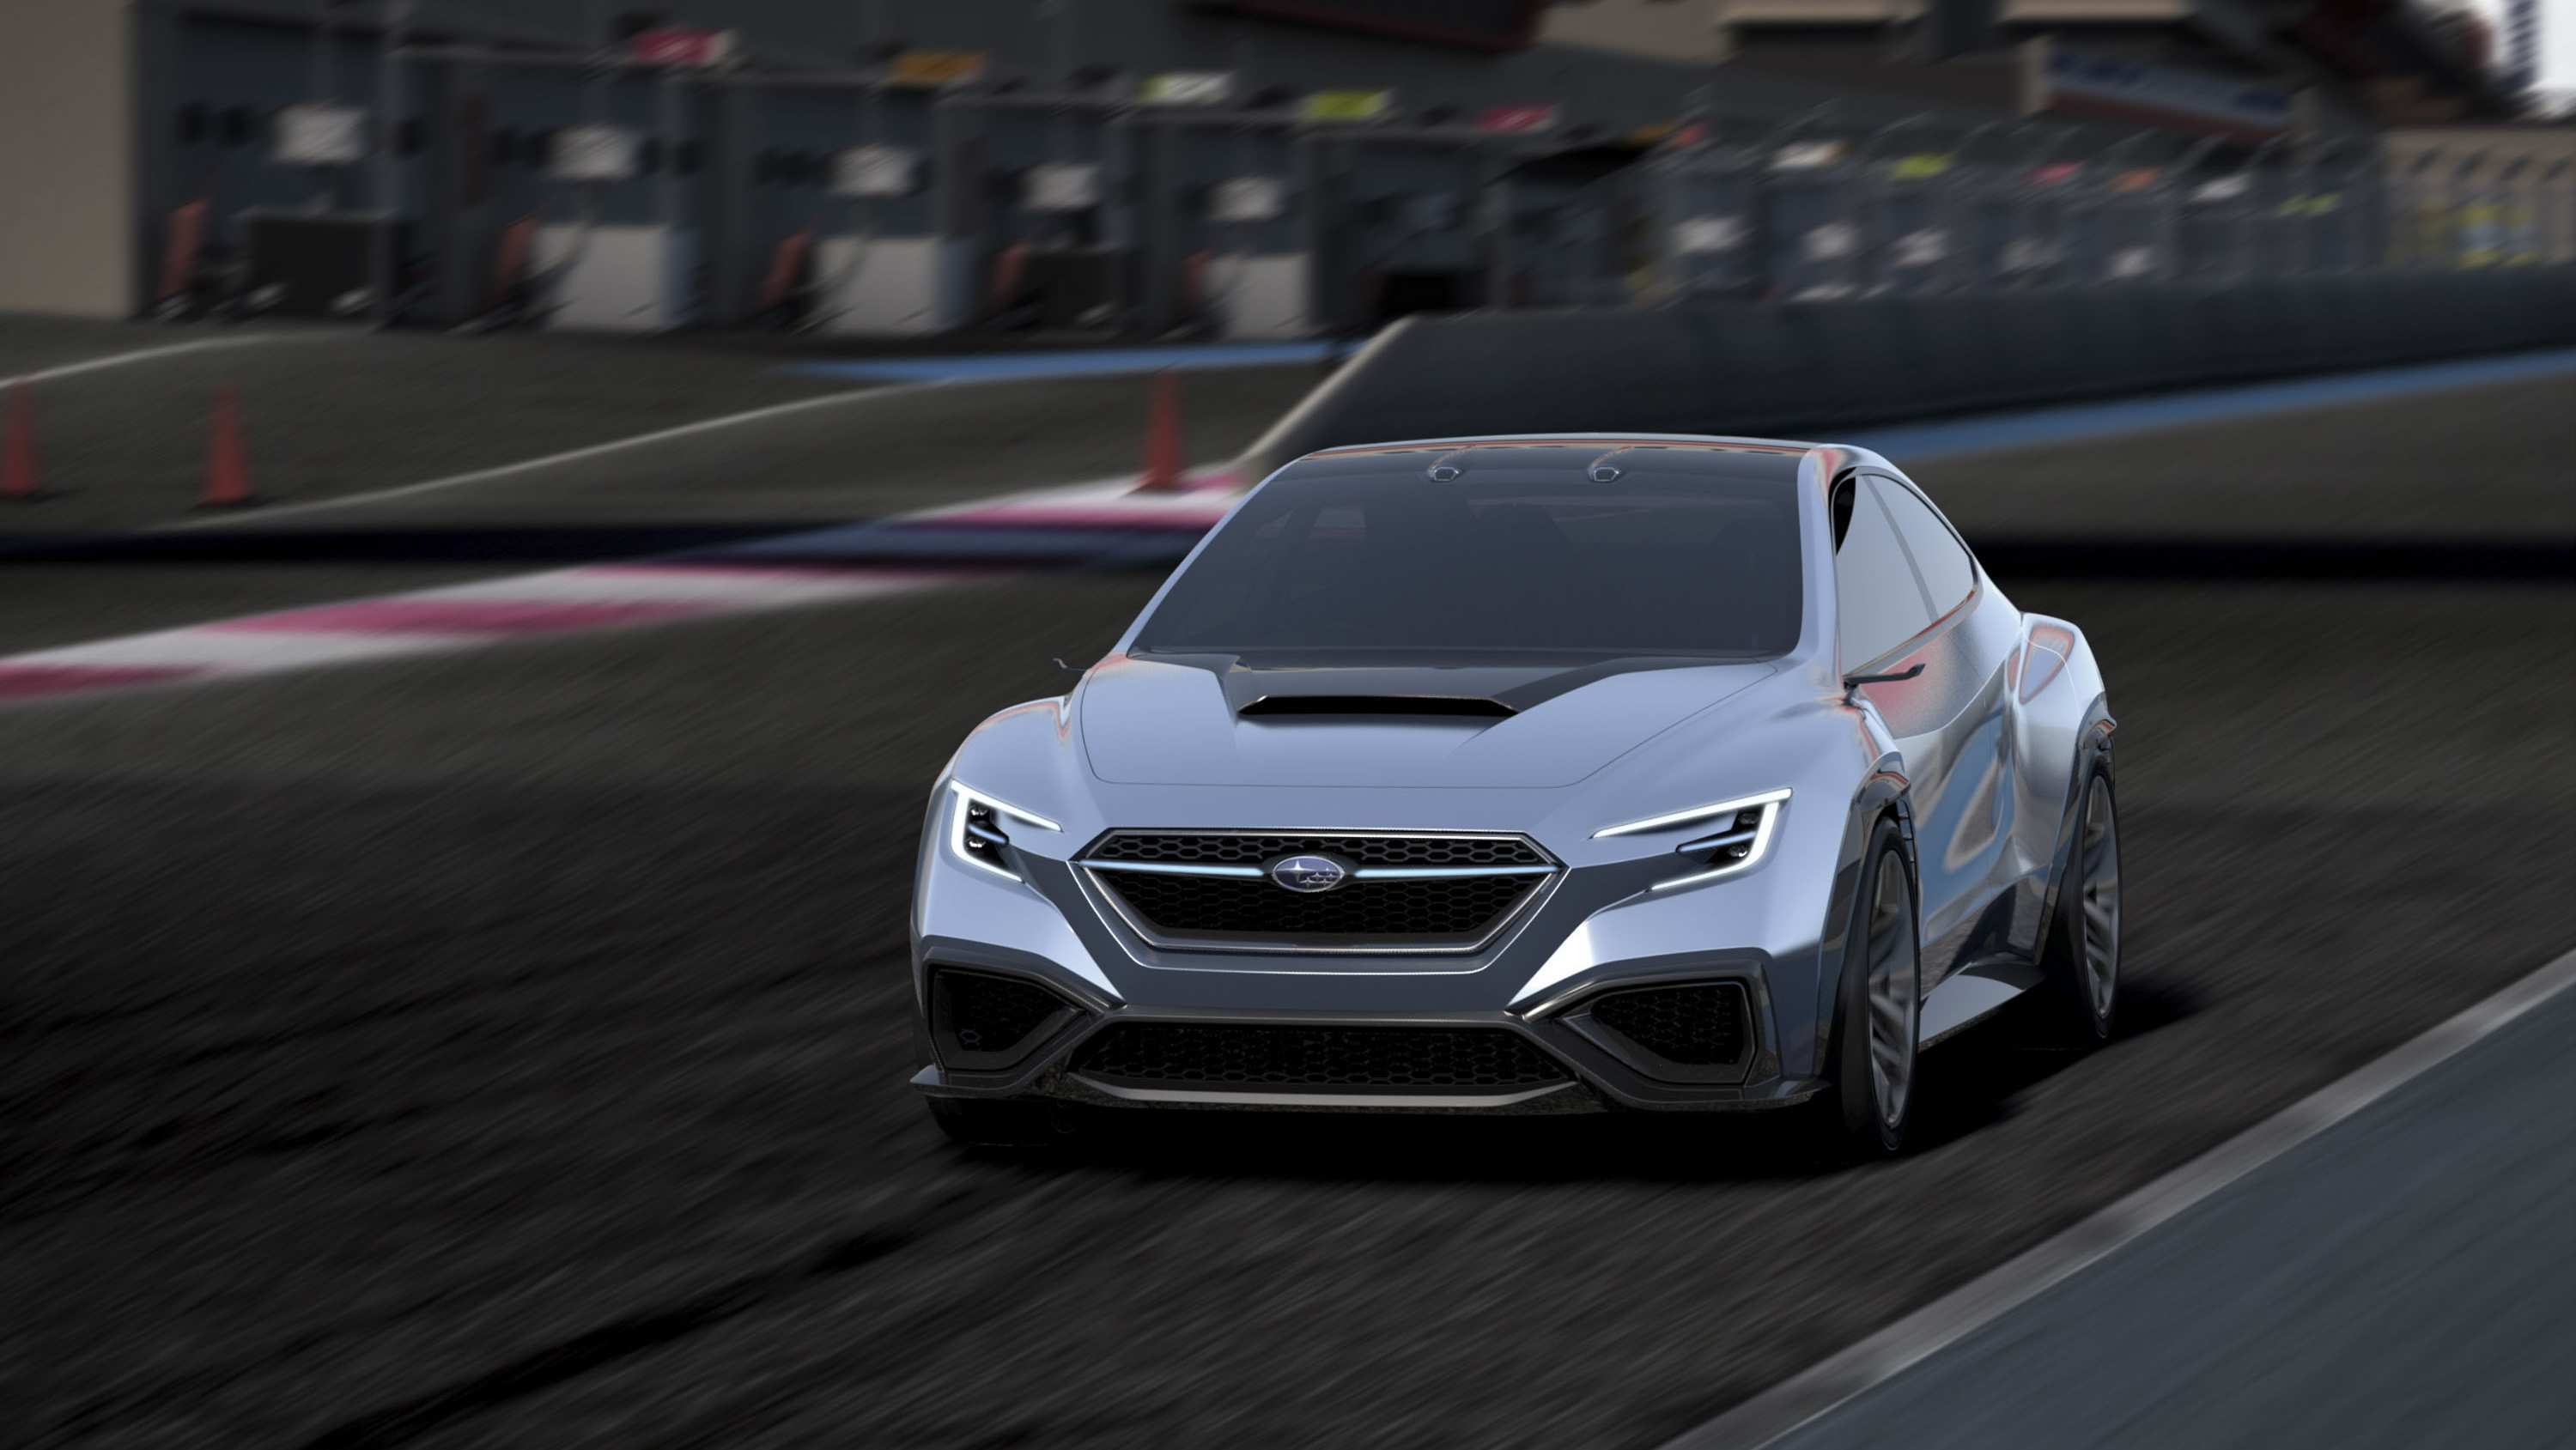 47 Concept of Wrx Subaru 2020 Price by Wrx Subaru 2020